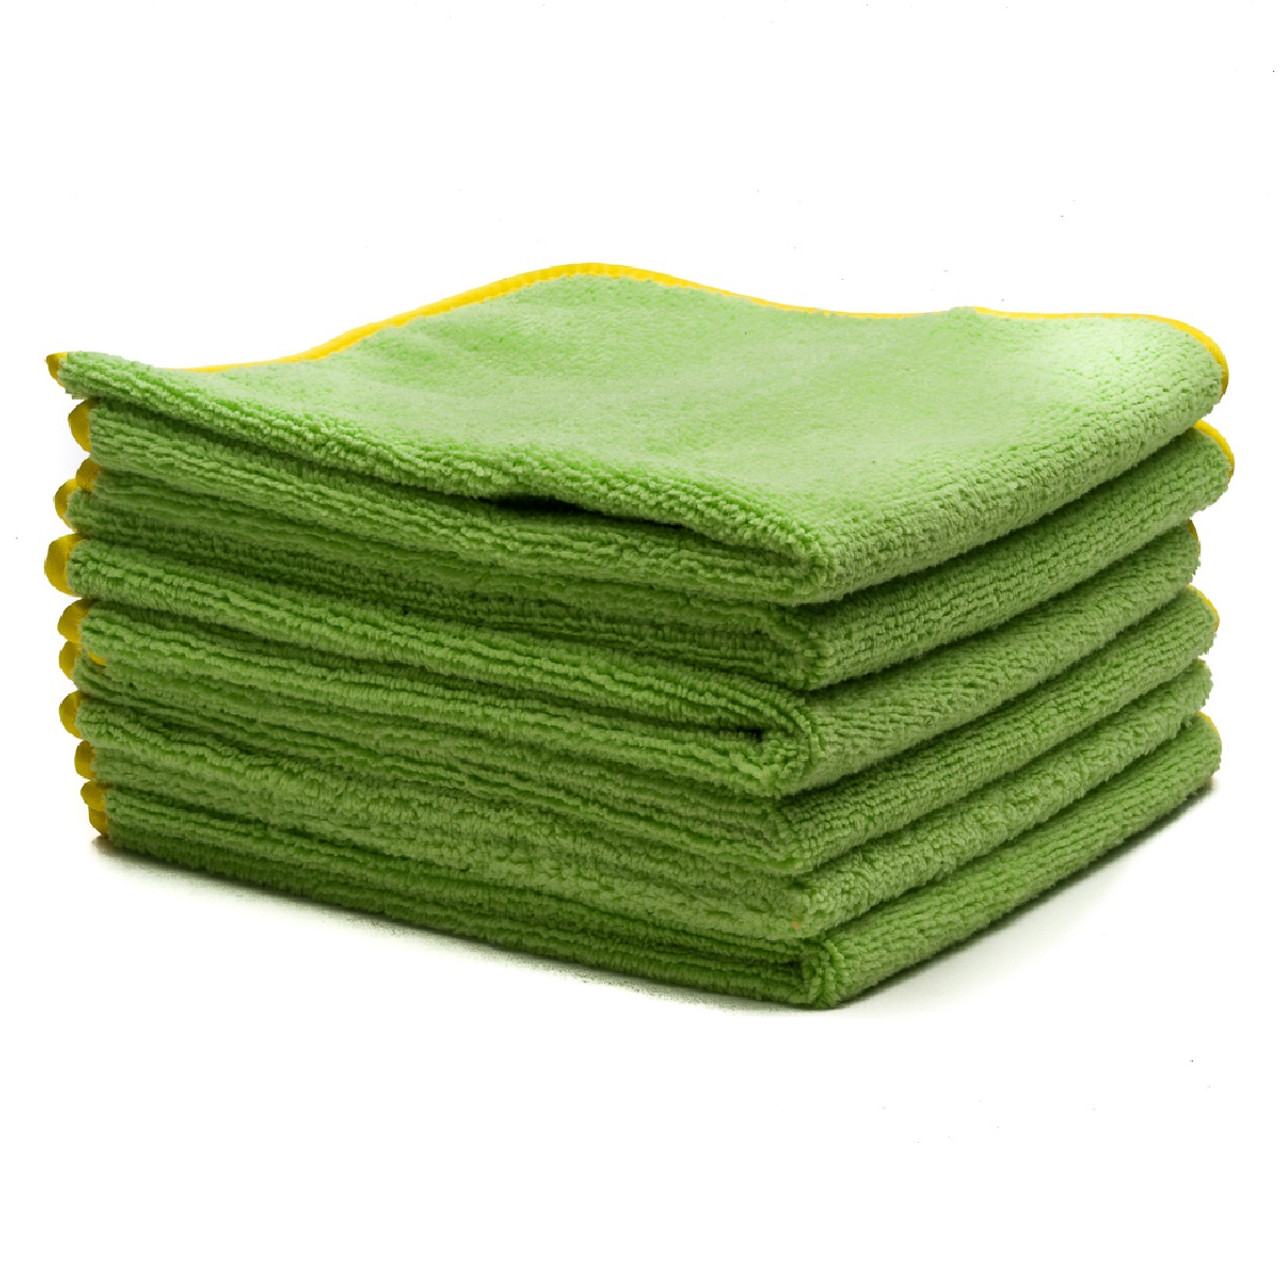 "Poorboy's World Deluxe Mega Towel - Green - 16""x16"" - 6 Pack"